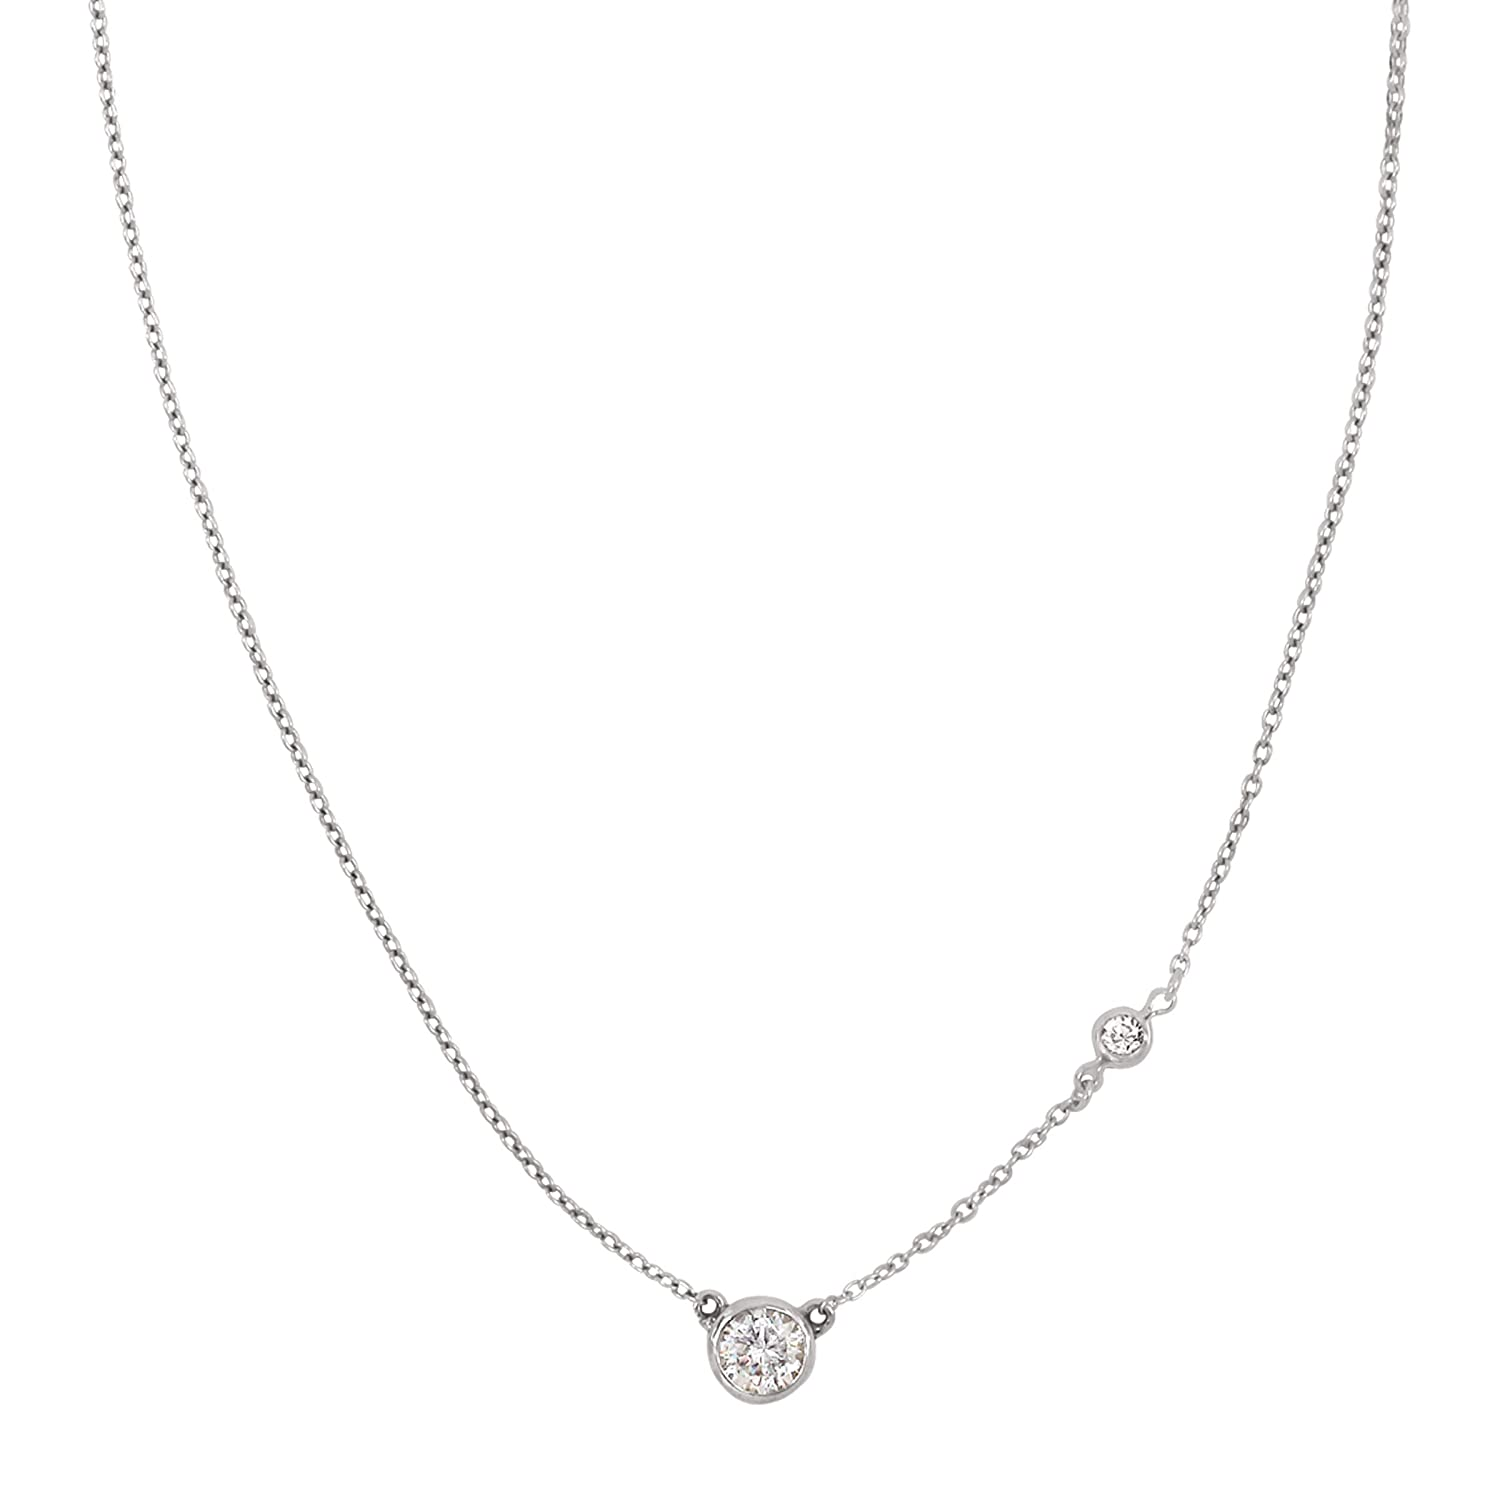 """Silpada 'Marvel' Circular Cubic Zirconia Station Necklace in Sterling Silver, 16"""" + 2"""""""